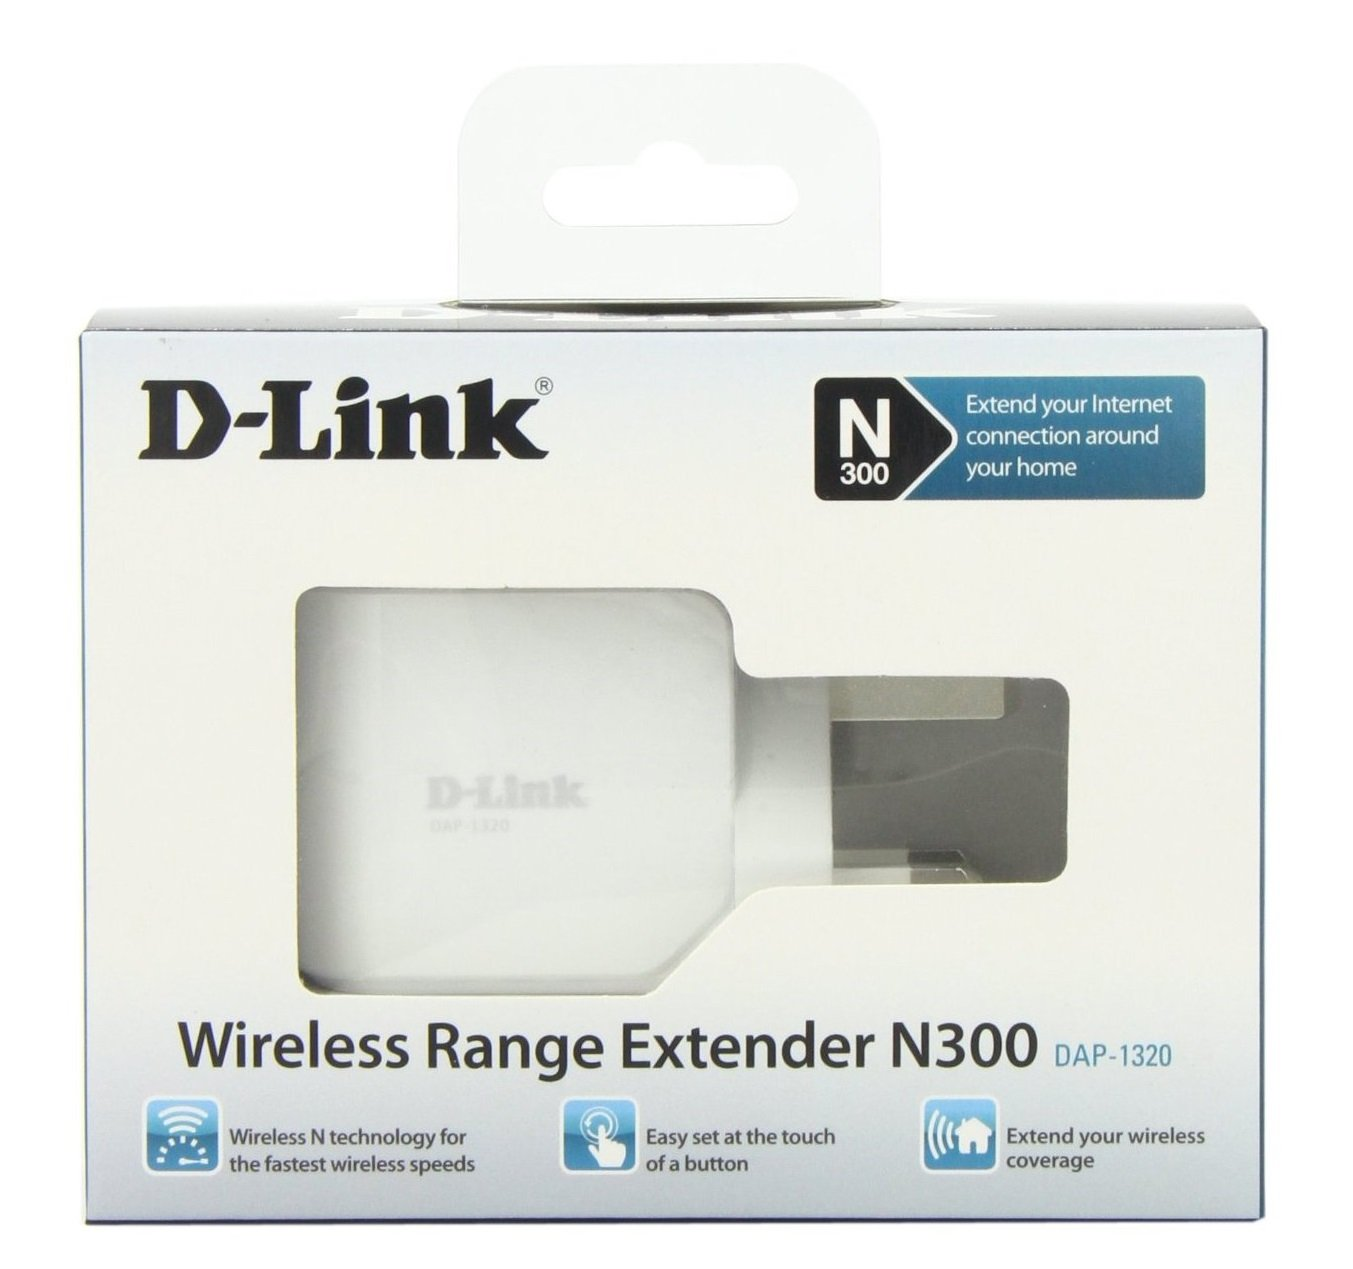 D-Link DAP-1320/E WLAN Repeater